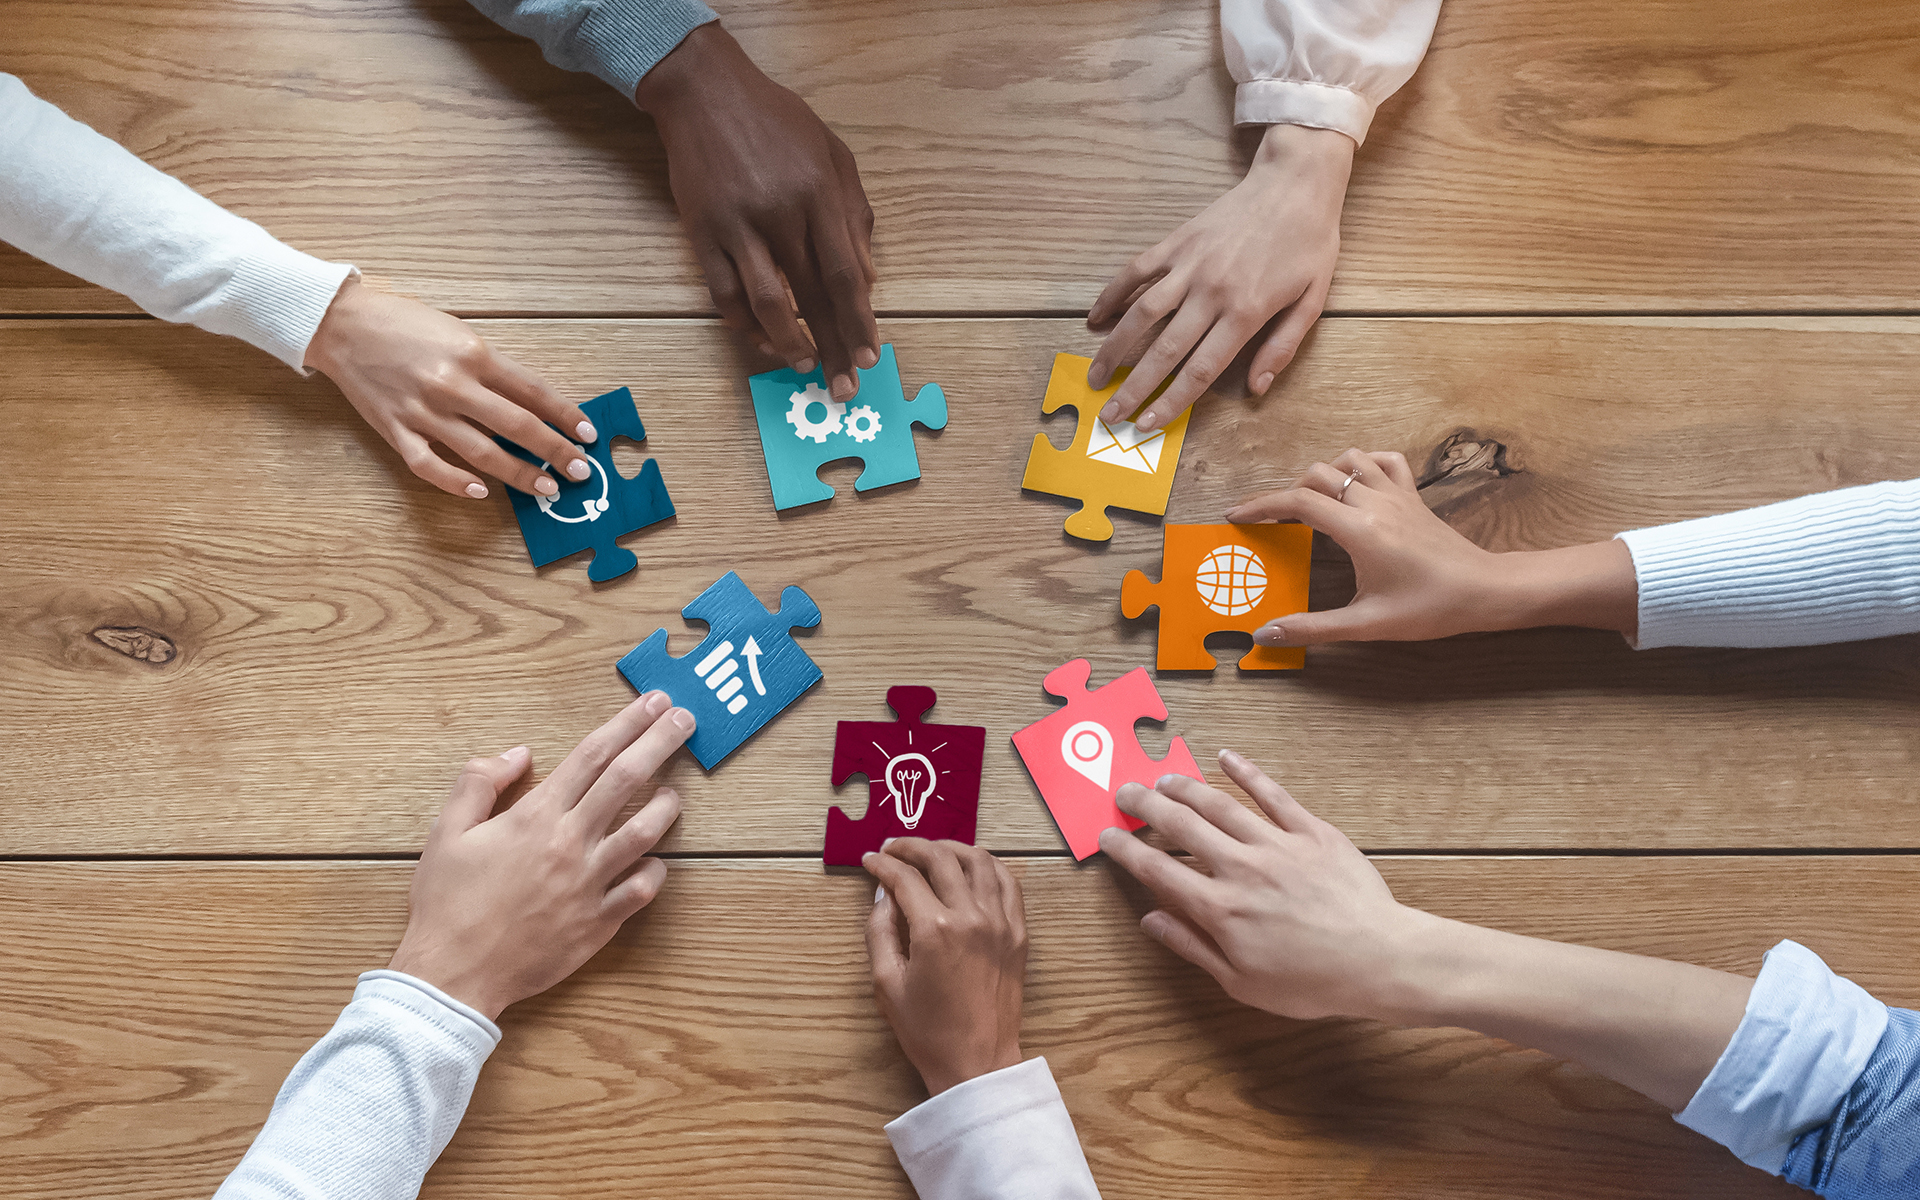 IBme Turns Toward Collaborative Leadership - Hands of international coworkers putting colorful puzzles together